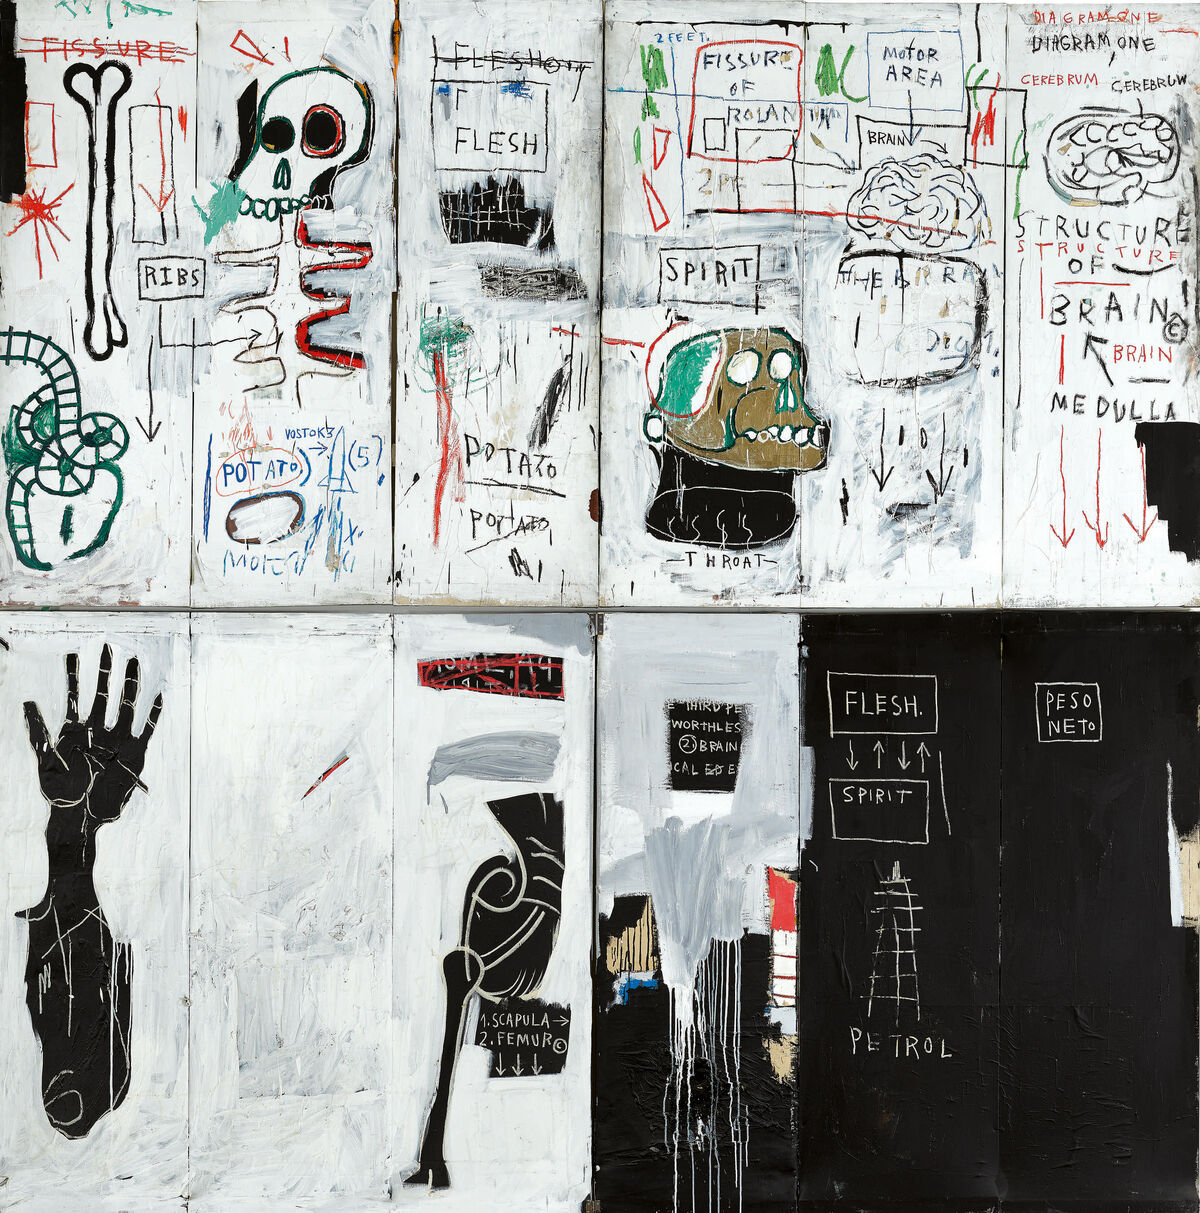 Jean-Michel Basquiat, Flesh and Spirit, 1982-3. © 2018 Estate of Jean-Michel Basquiat / Artists Rights Society (ARS), New York, NY. Courtesy of Sotheby's.